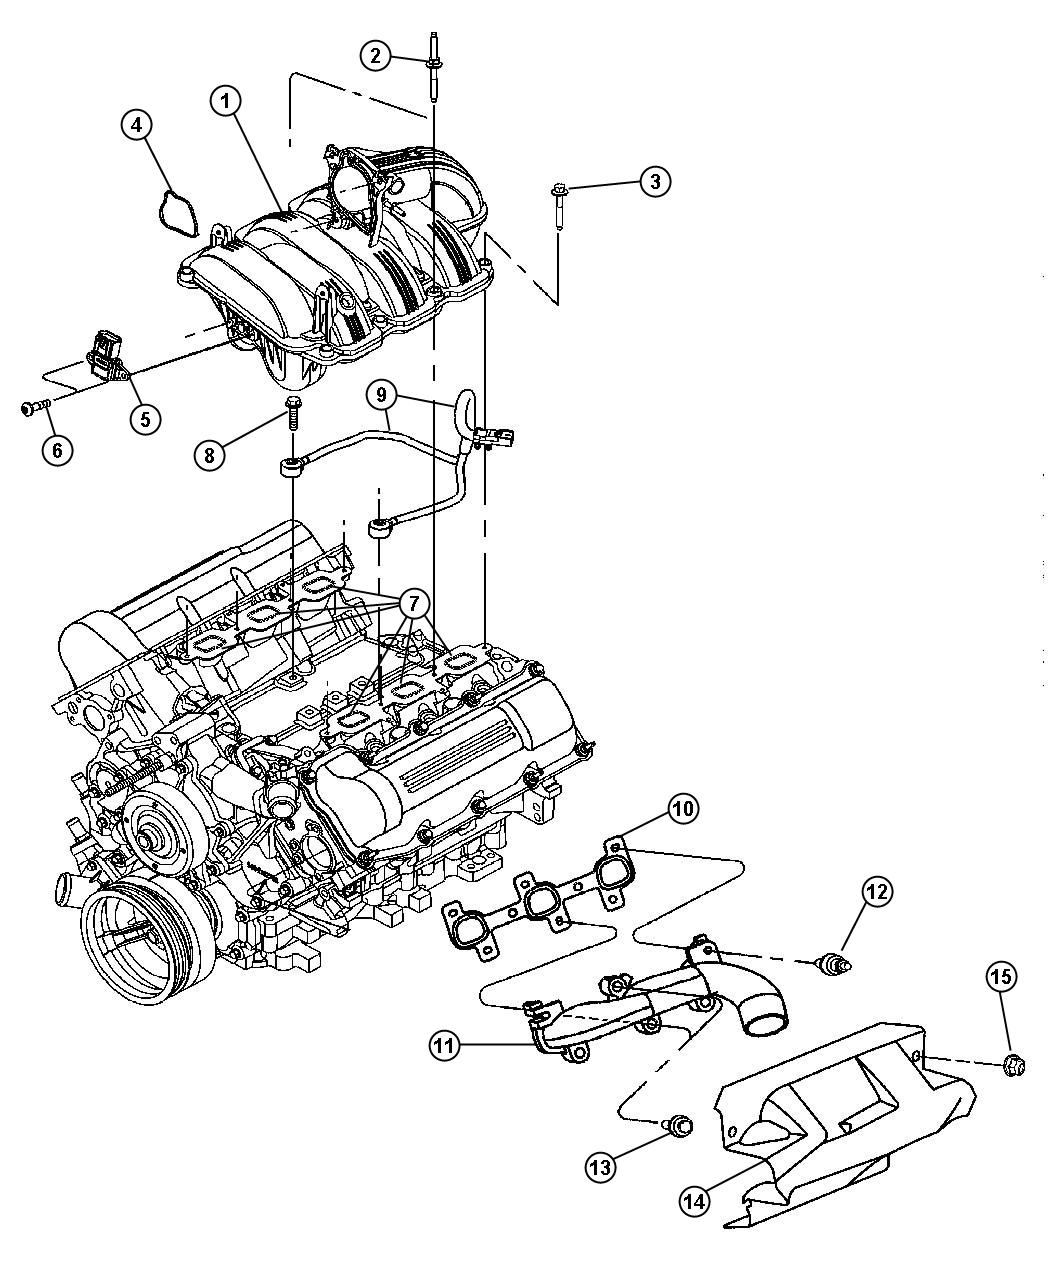 00 dodge dakota wiring diagram